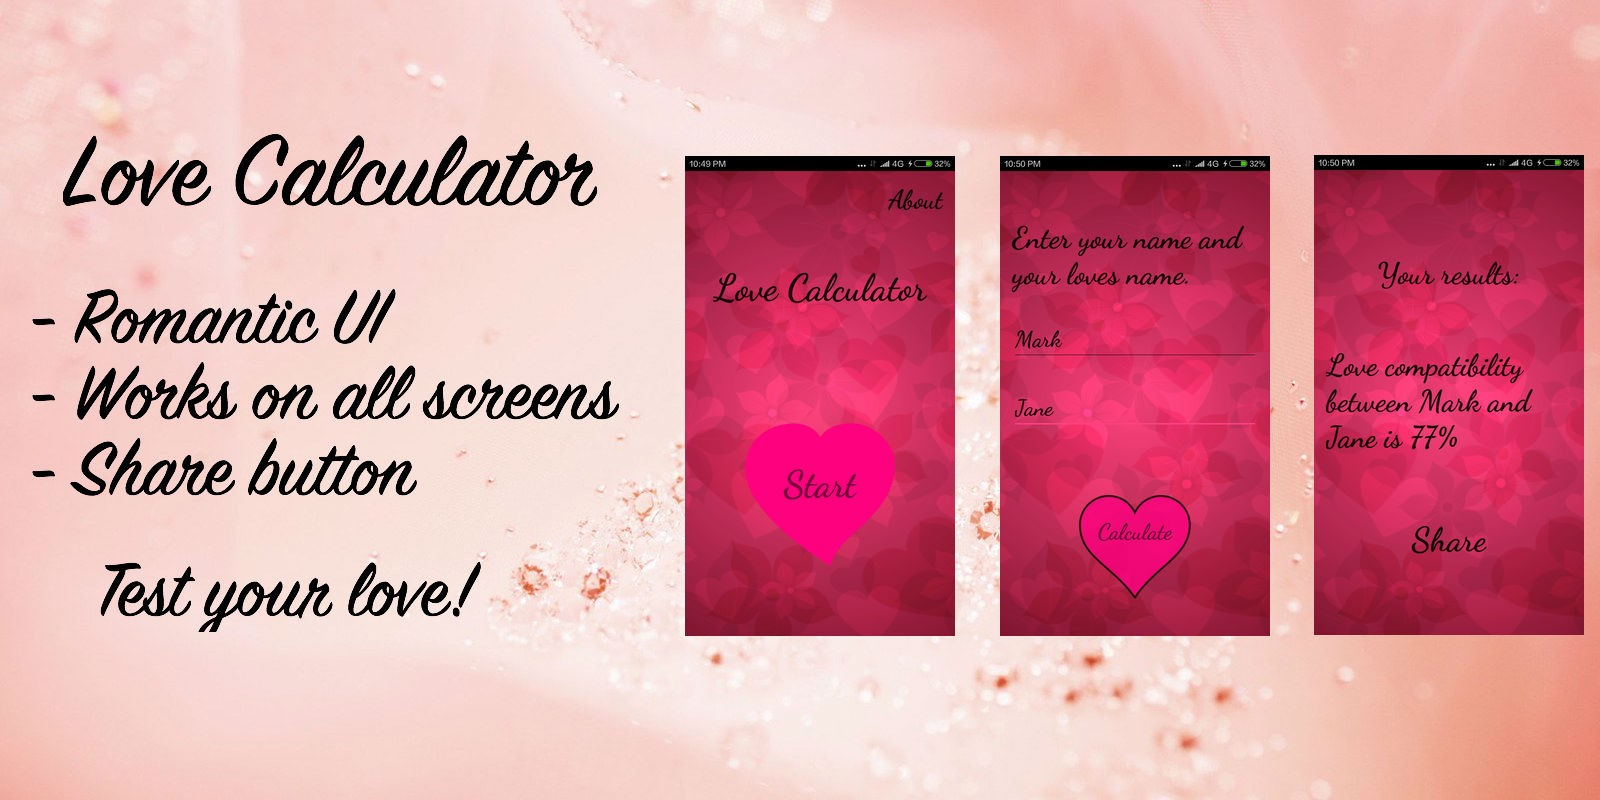 Uncategorized Love Calculate love calculator android app source code miscellaneous code